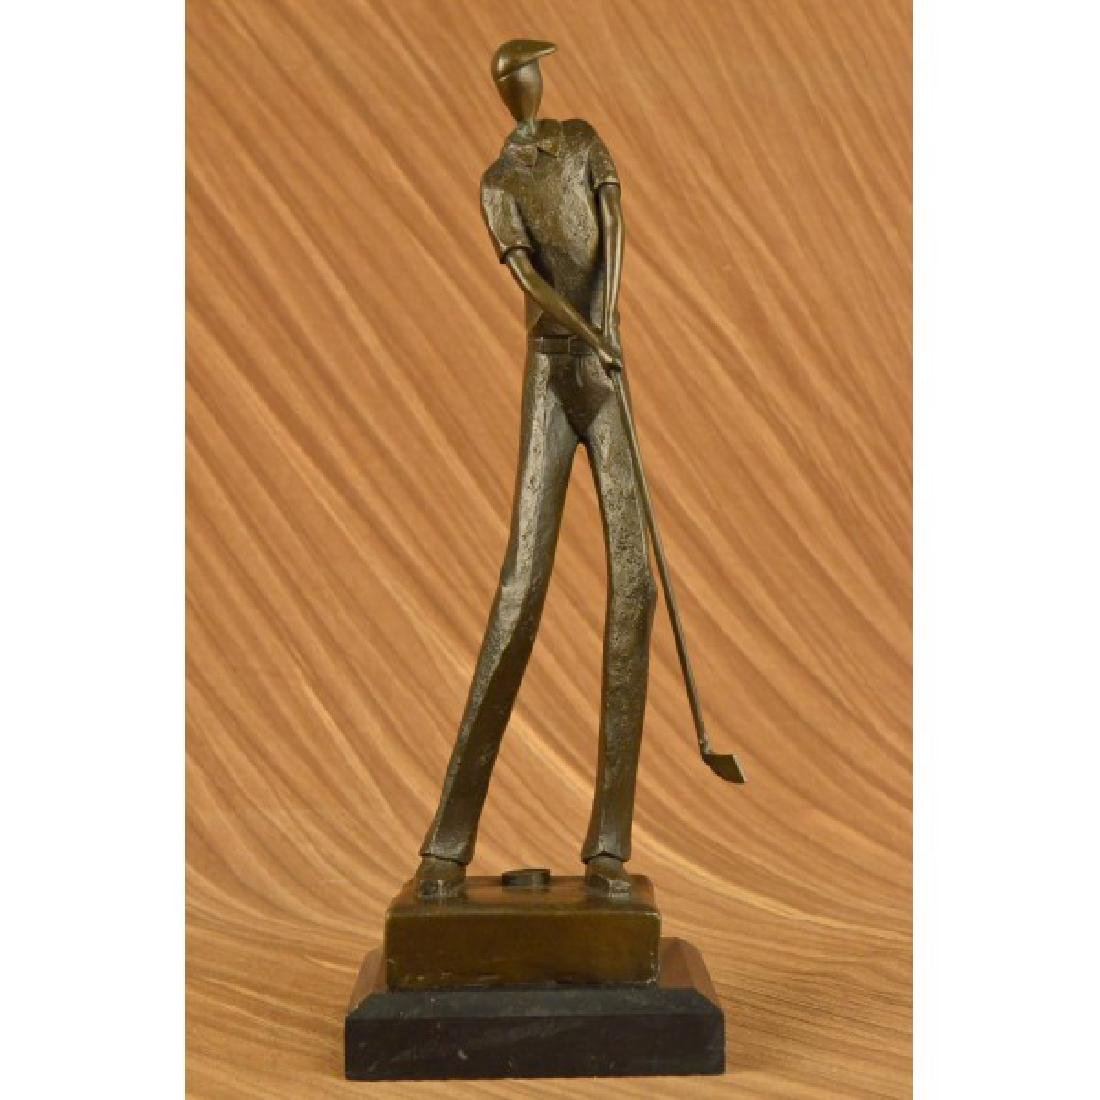 JEAN PATOU SOLID BRONZE GOLFER SCULPTURE. ABSTRACT ART